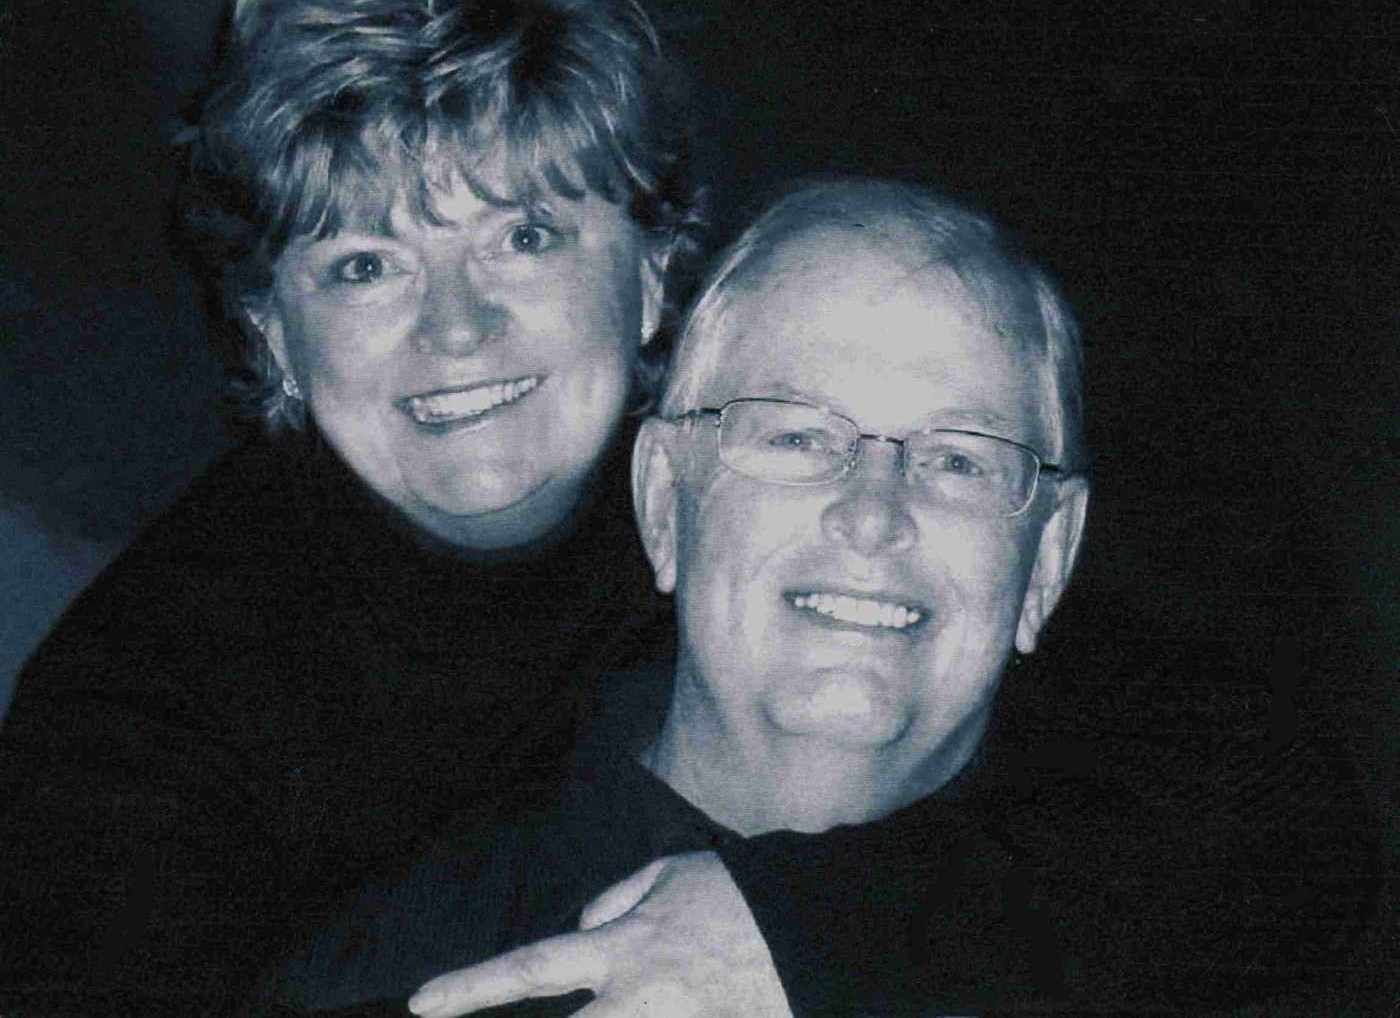 Black and white photo of the artist, Steve Smith, and his wife, Karen Smith